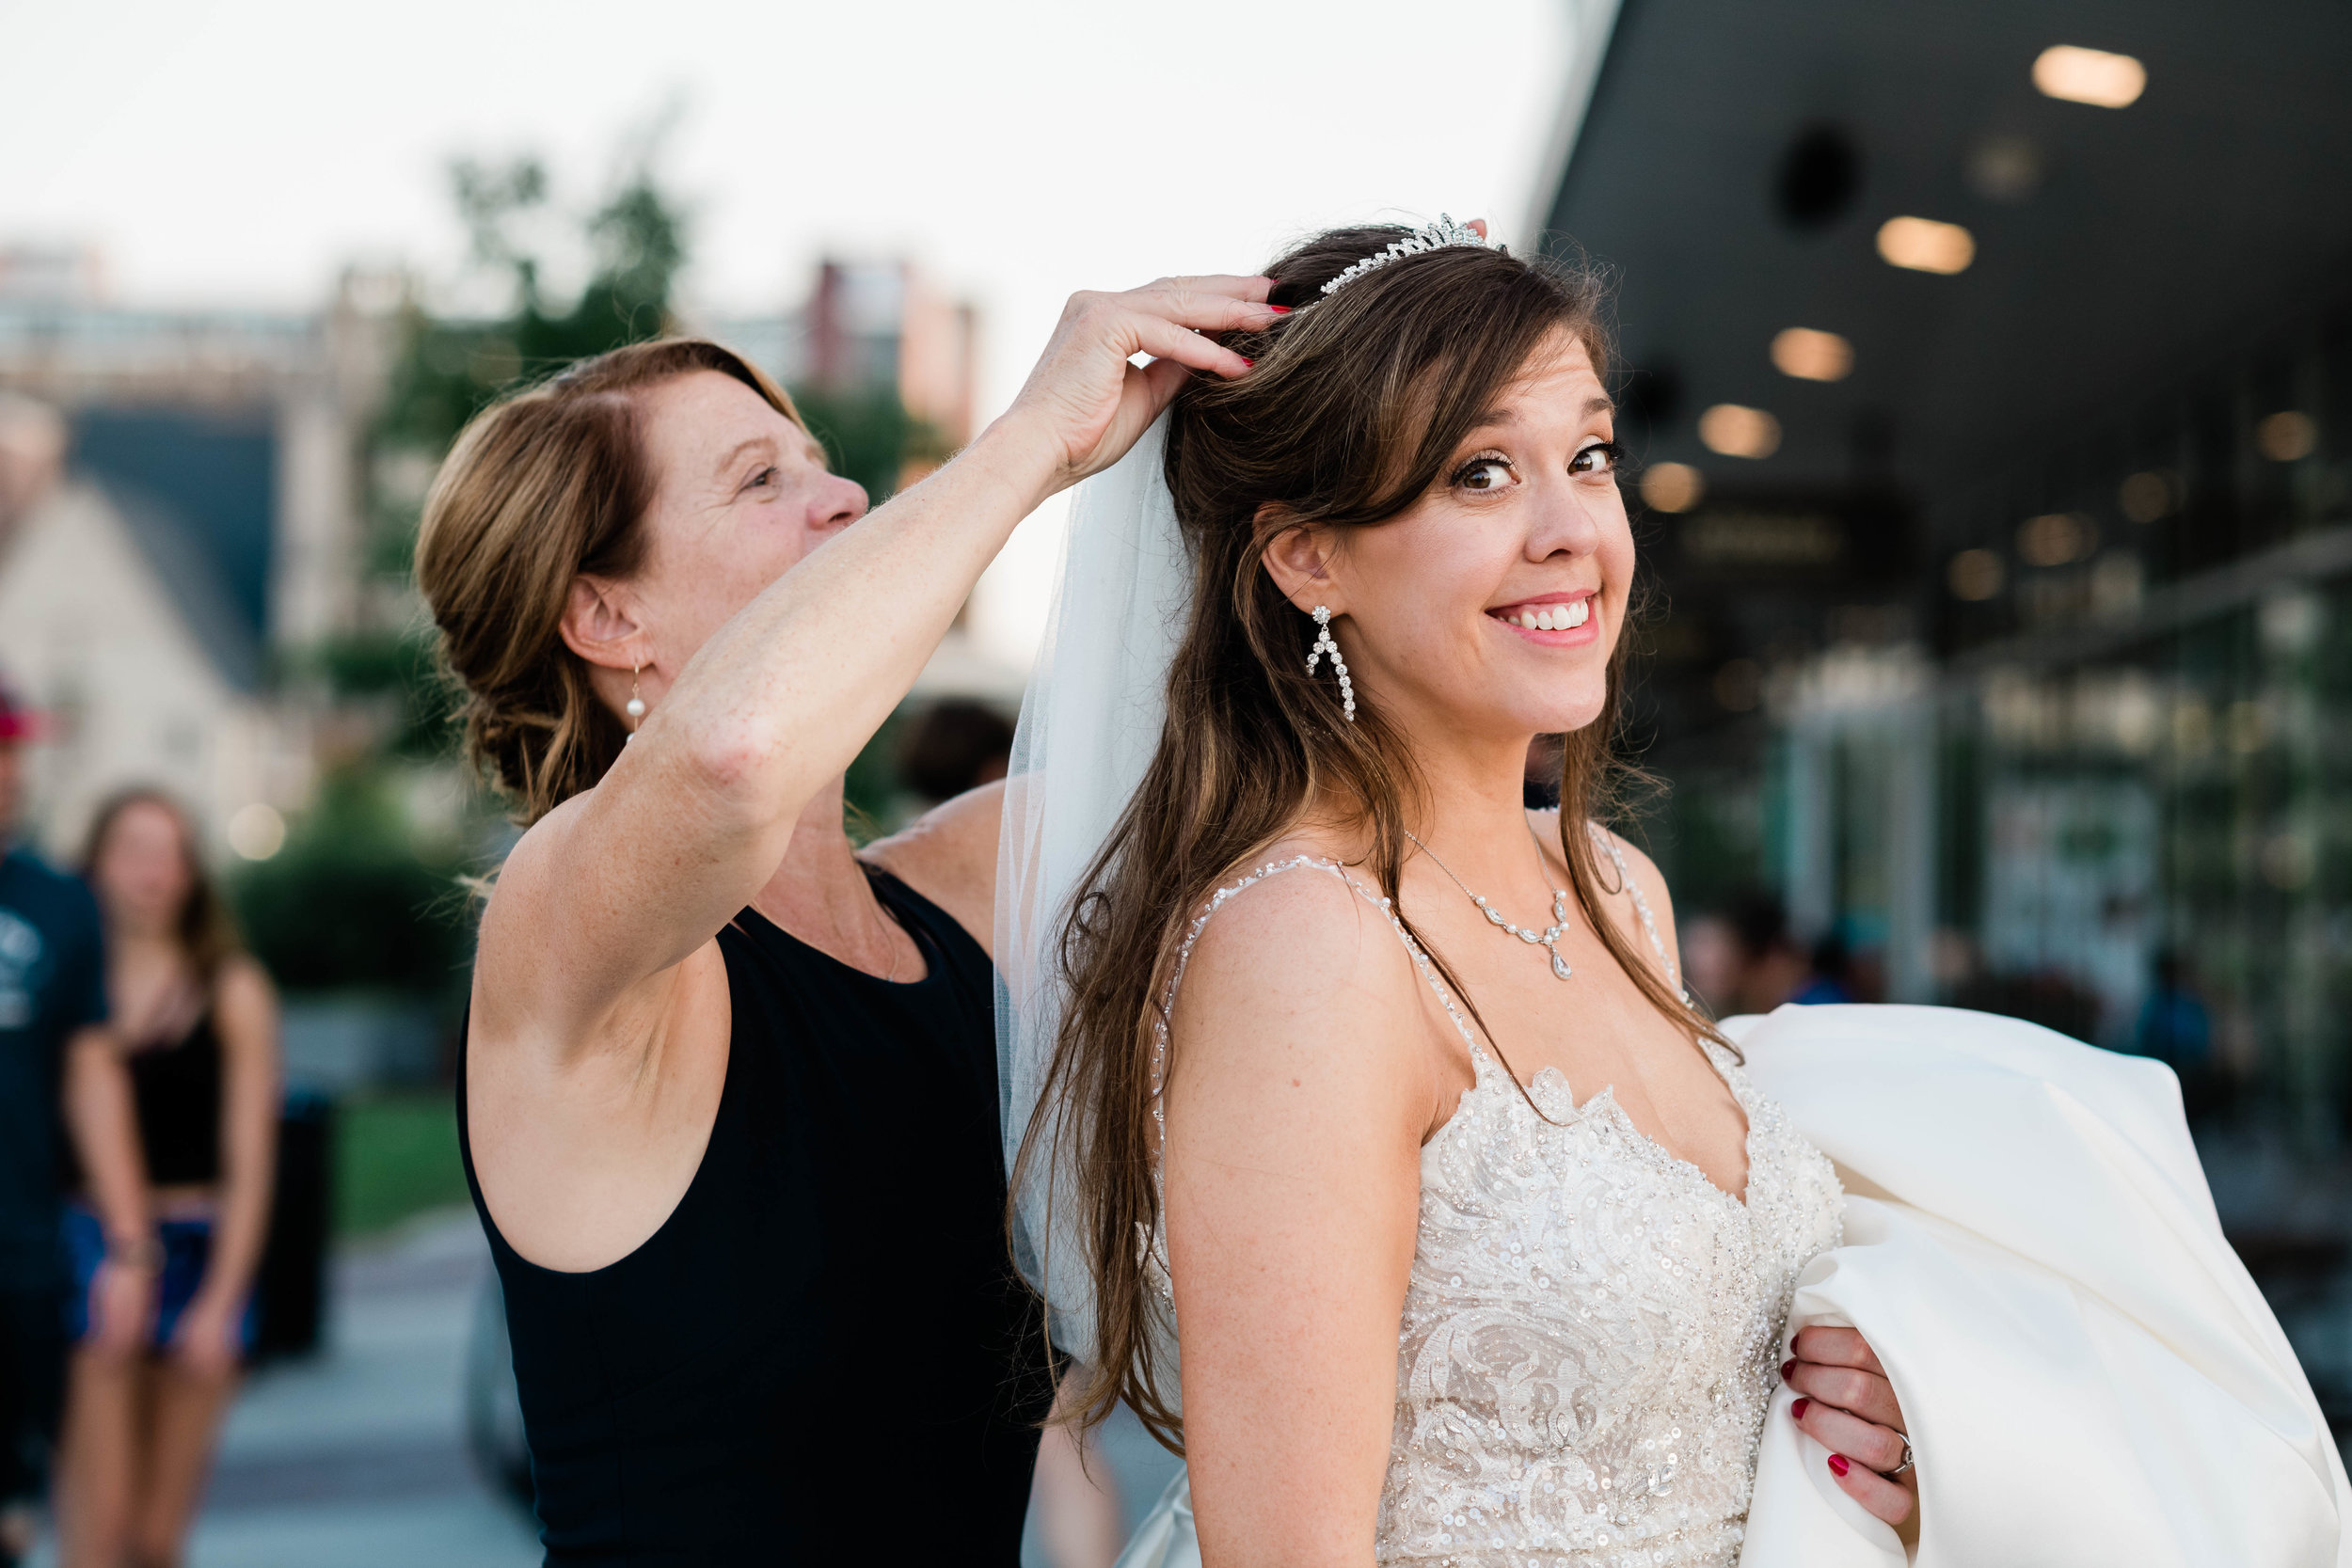 Mother putting her daughter's veil on